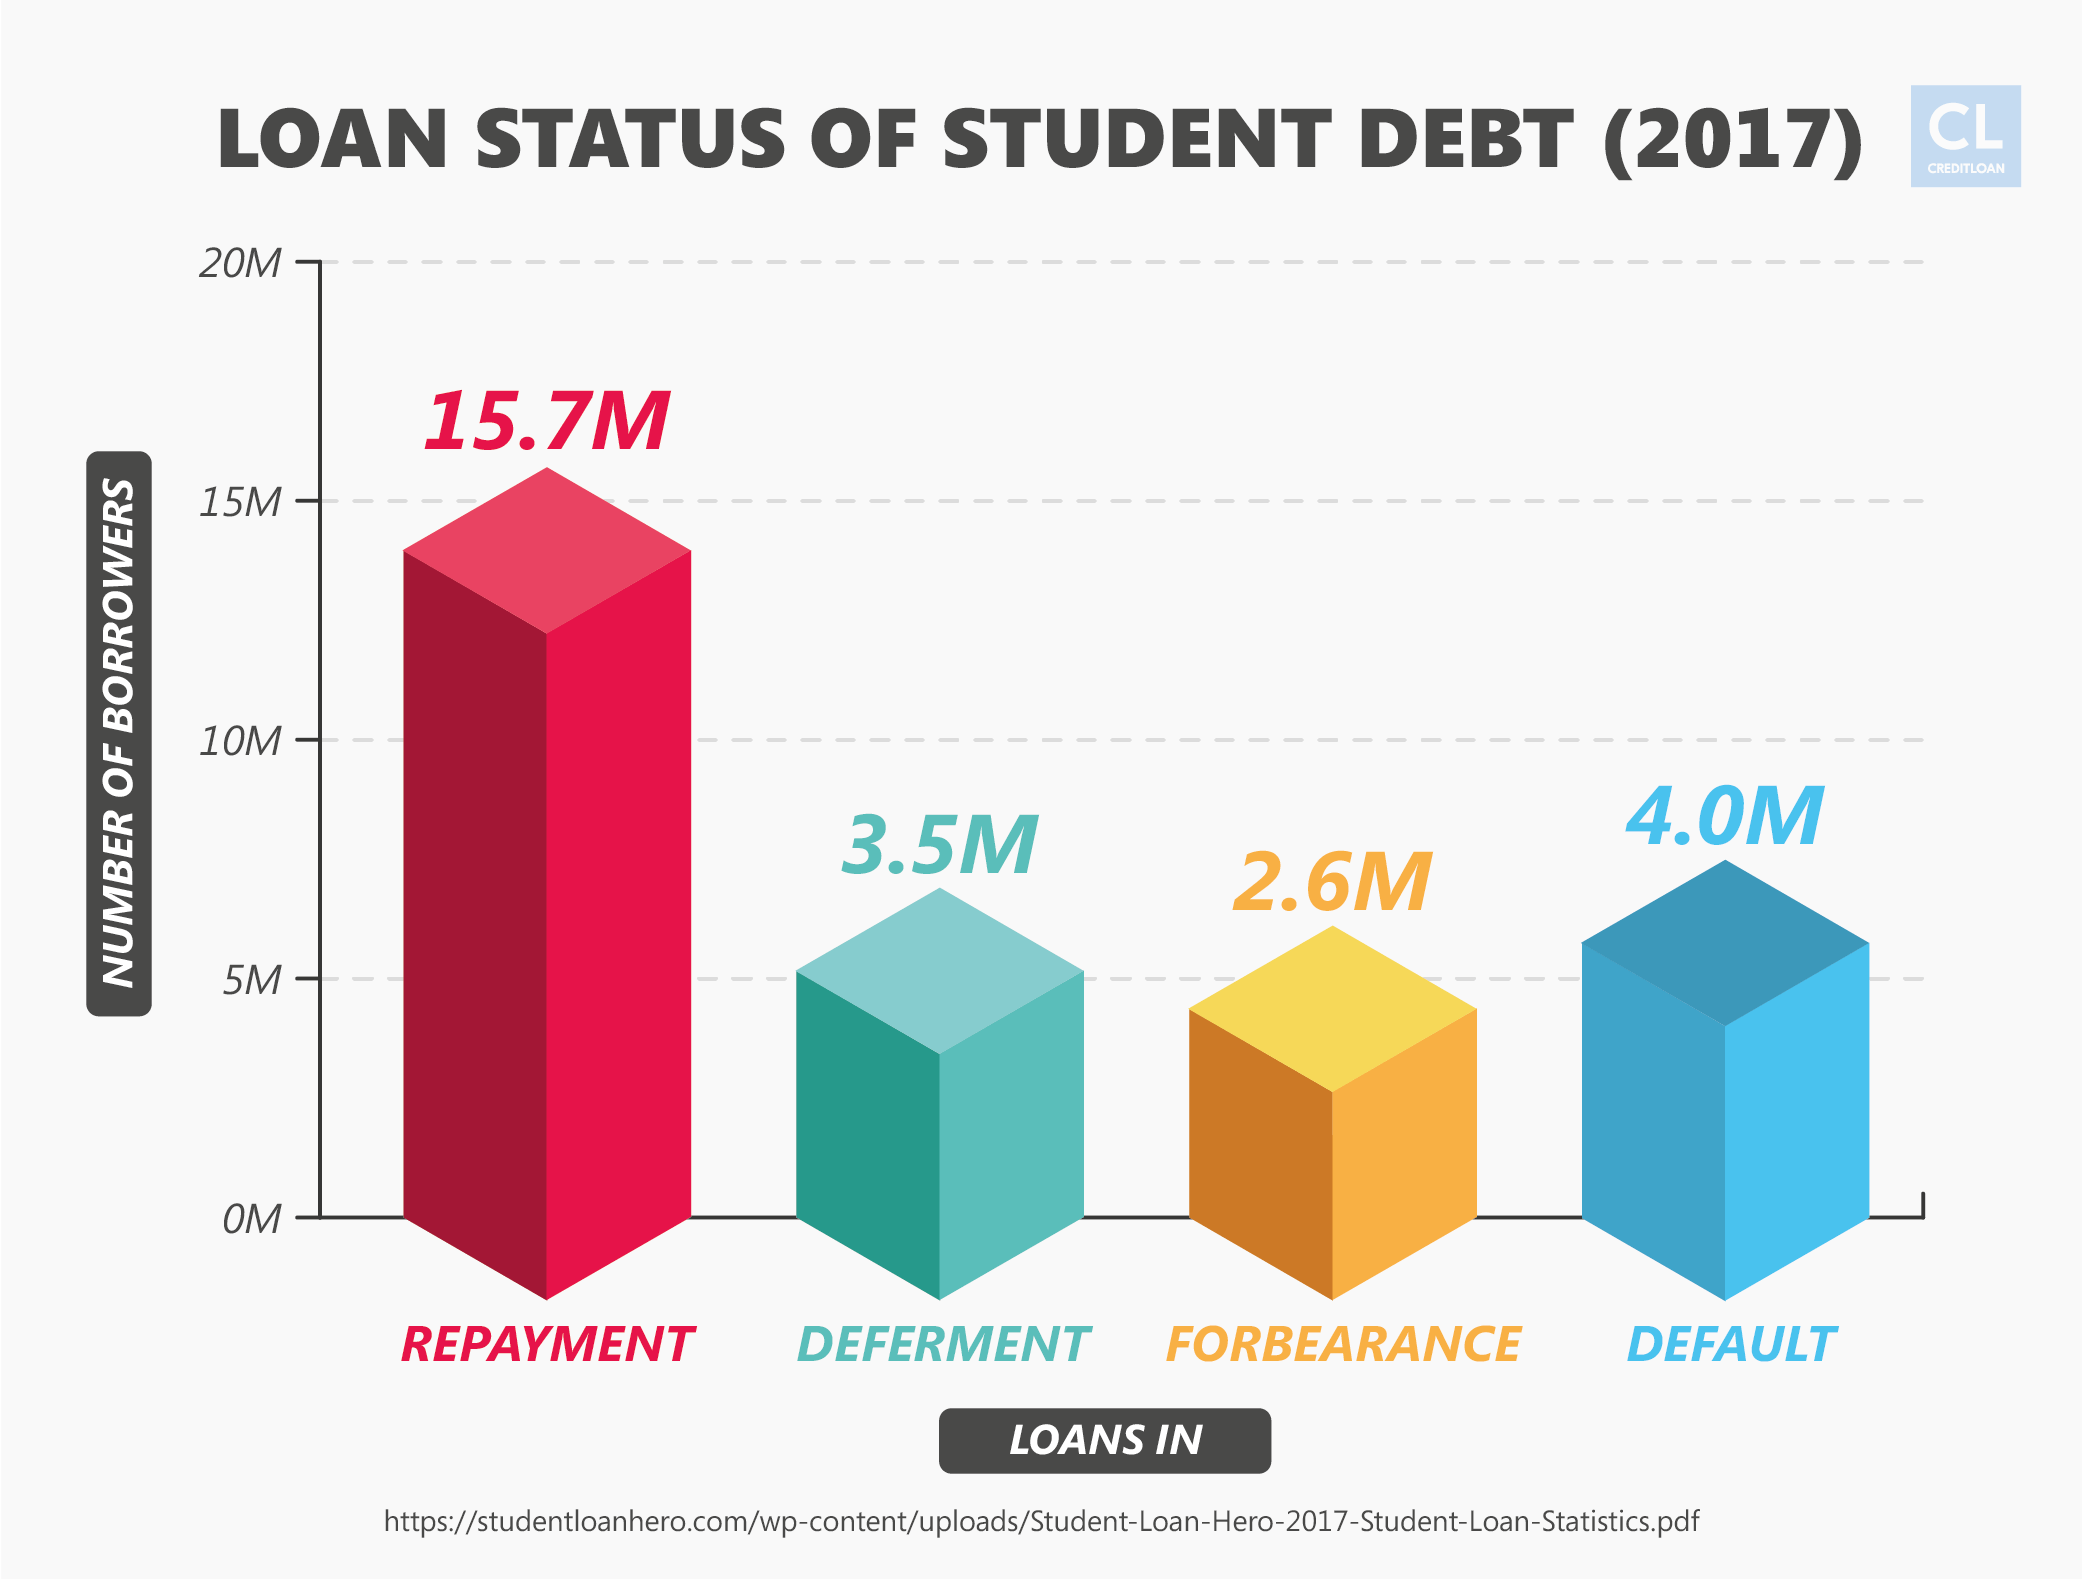 Loan Status of Student Debt (2017)